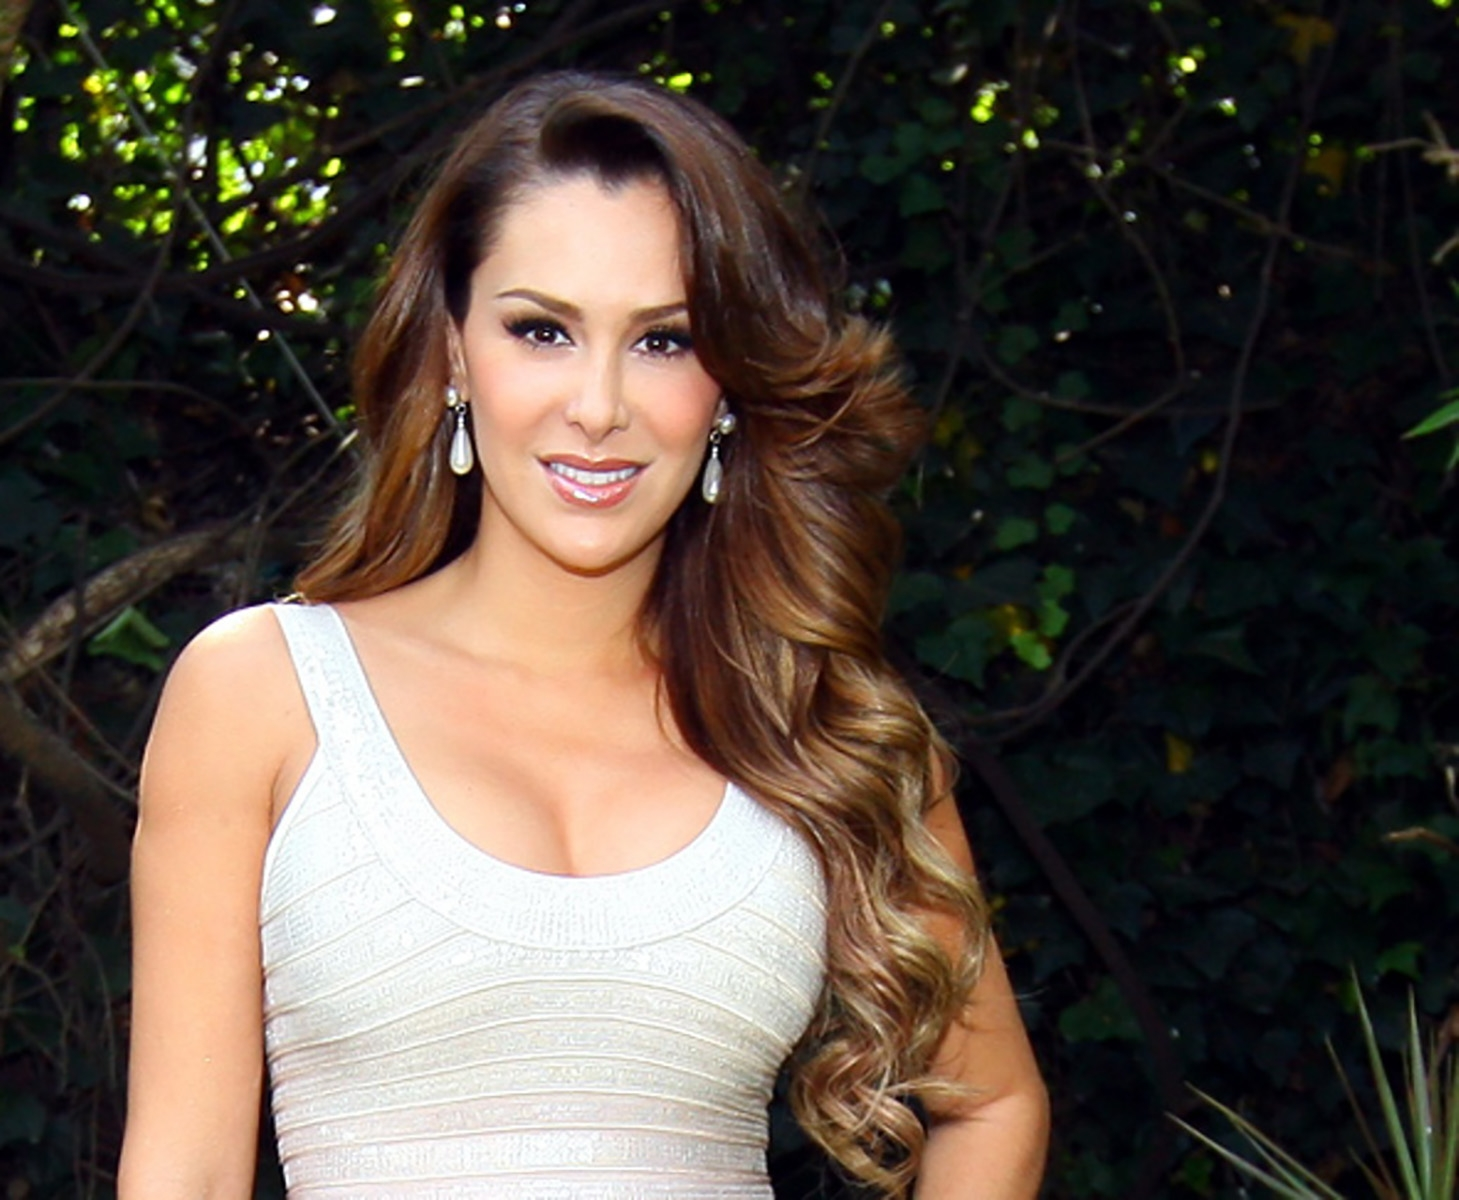 Ninel Conde nudes (78 photo), Tits, Hot, Instagram, cleavage 2017